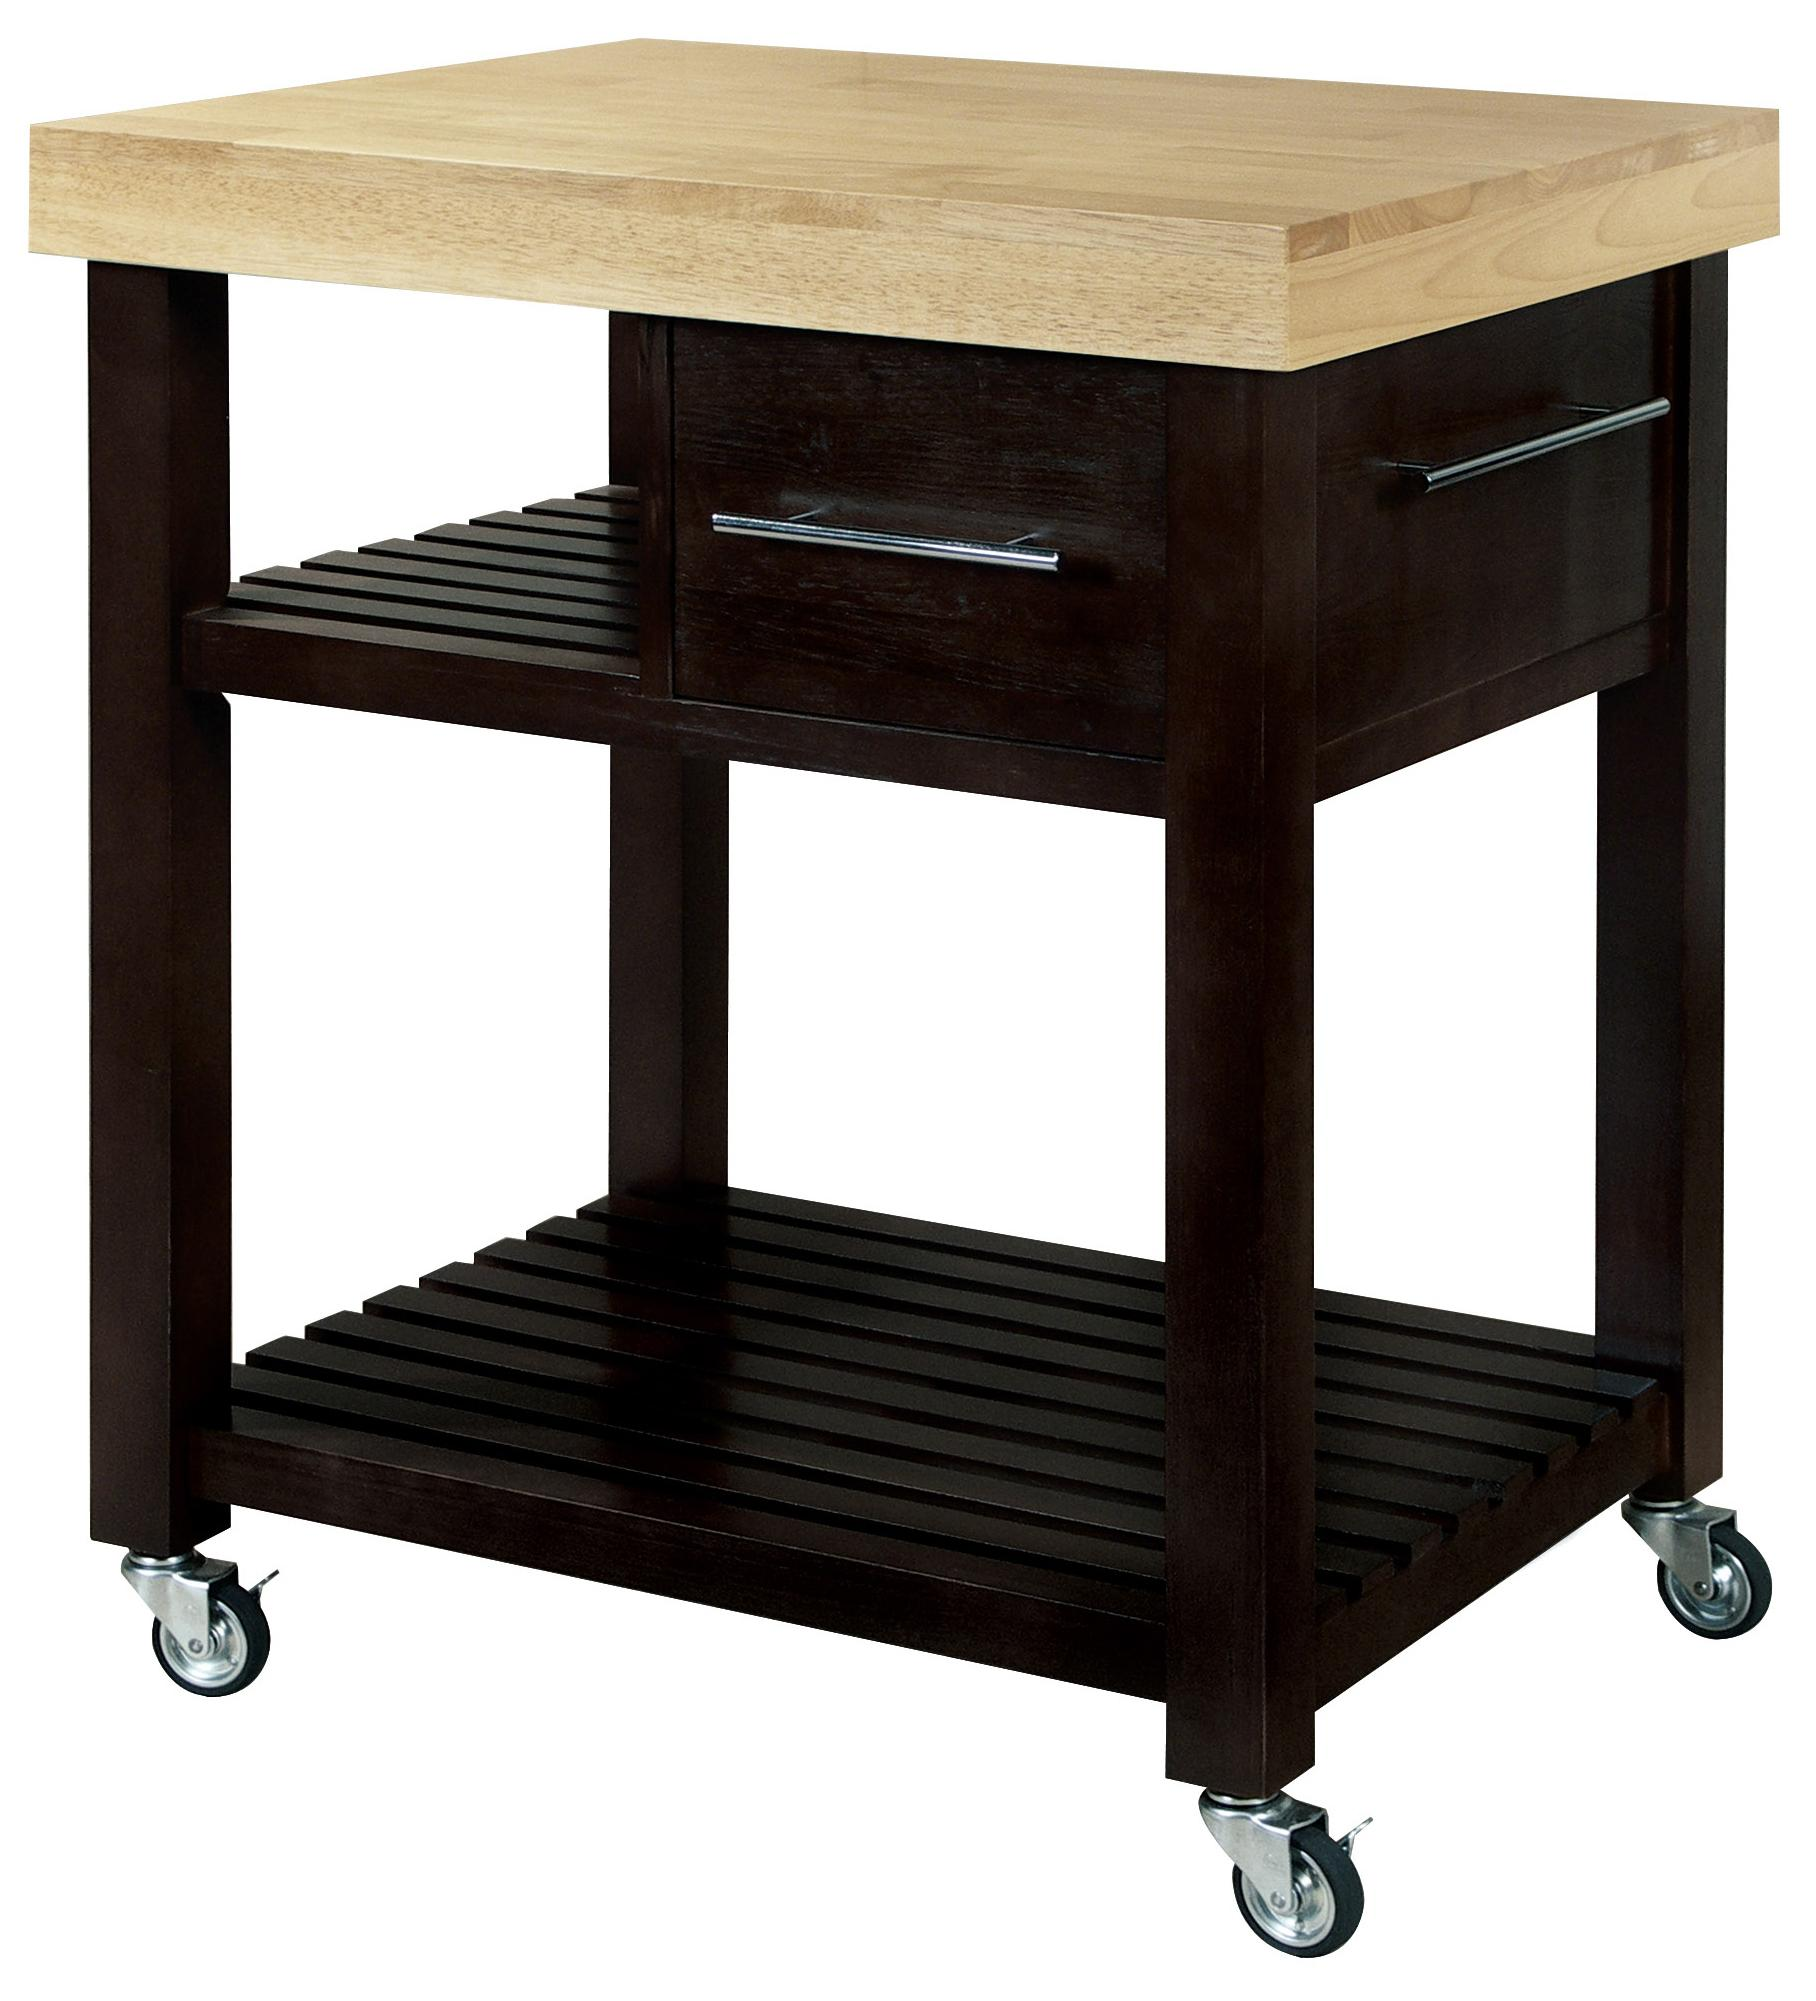 John Thomas Dining Essentials 1-Drawer 2-Shelf Kitchen Cart - Item Number: WC10-3